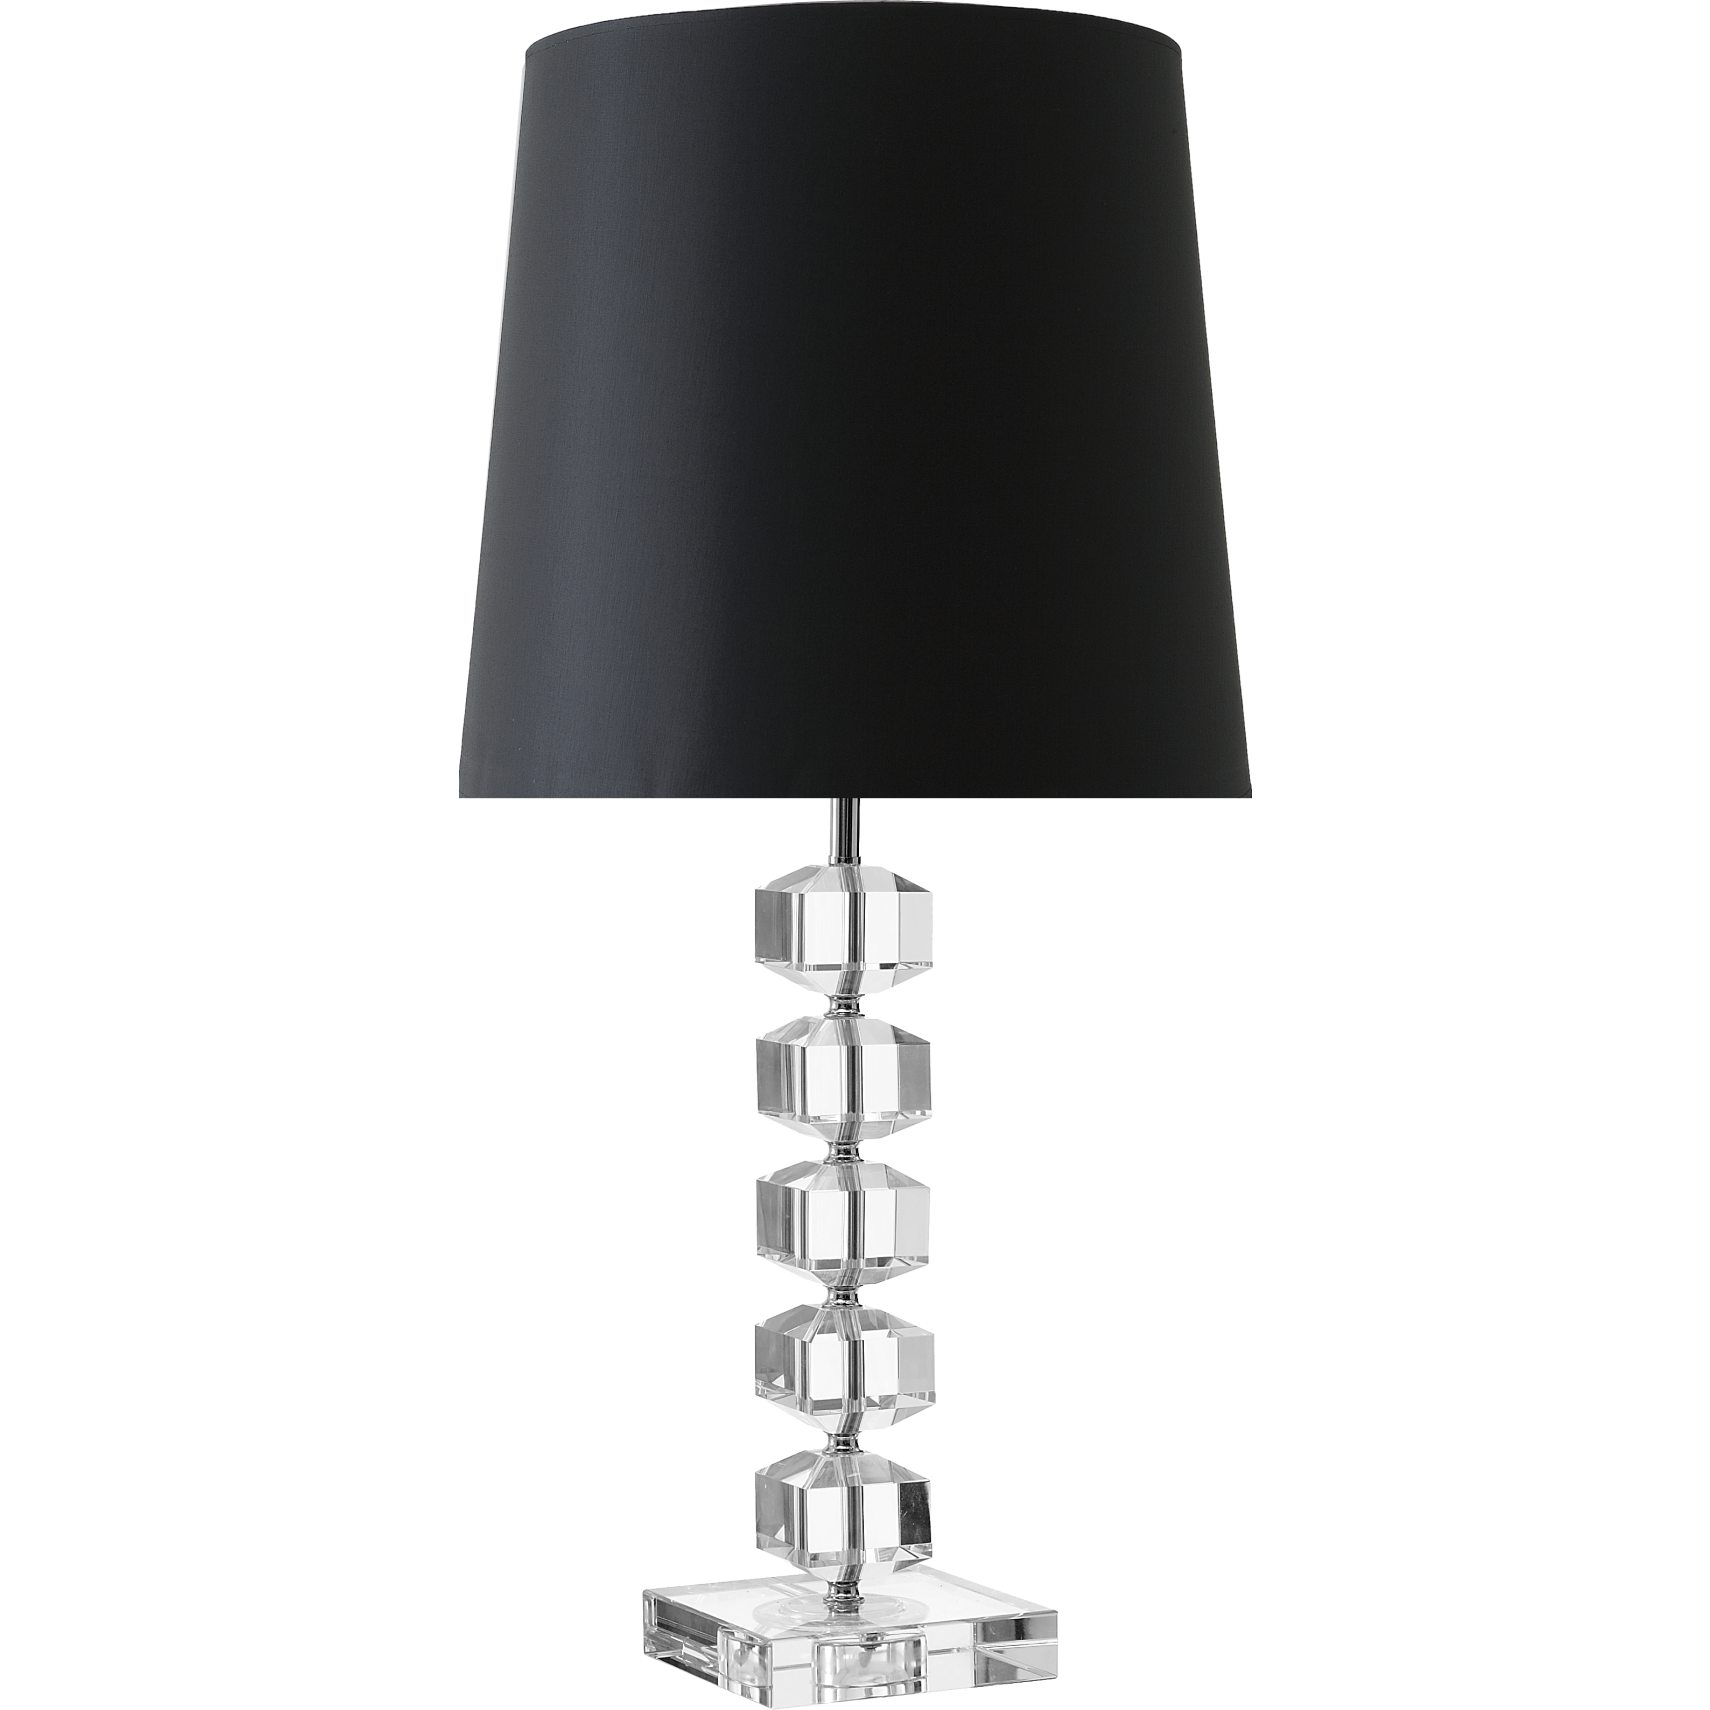 Crystal Bordlampe 44 x 13 cm - Massiv klar krystal base